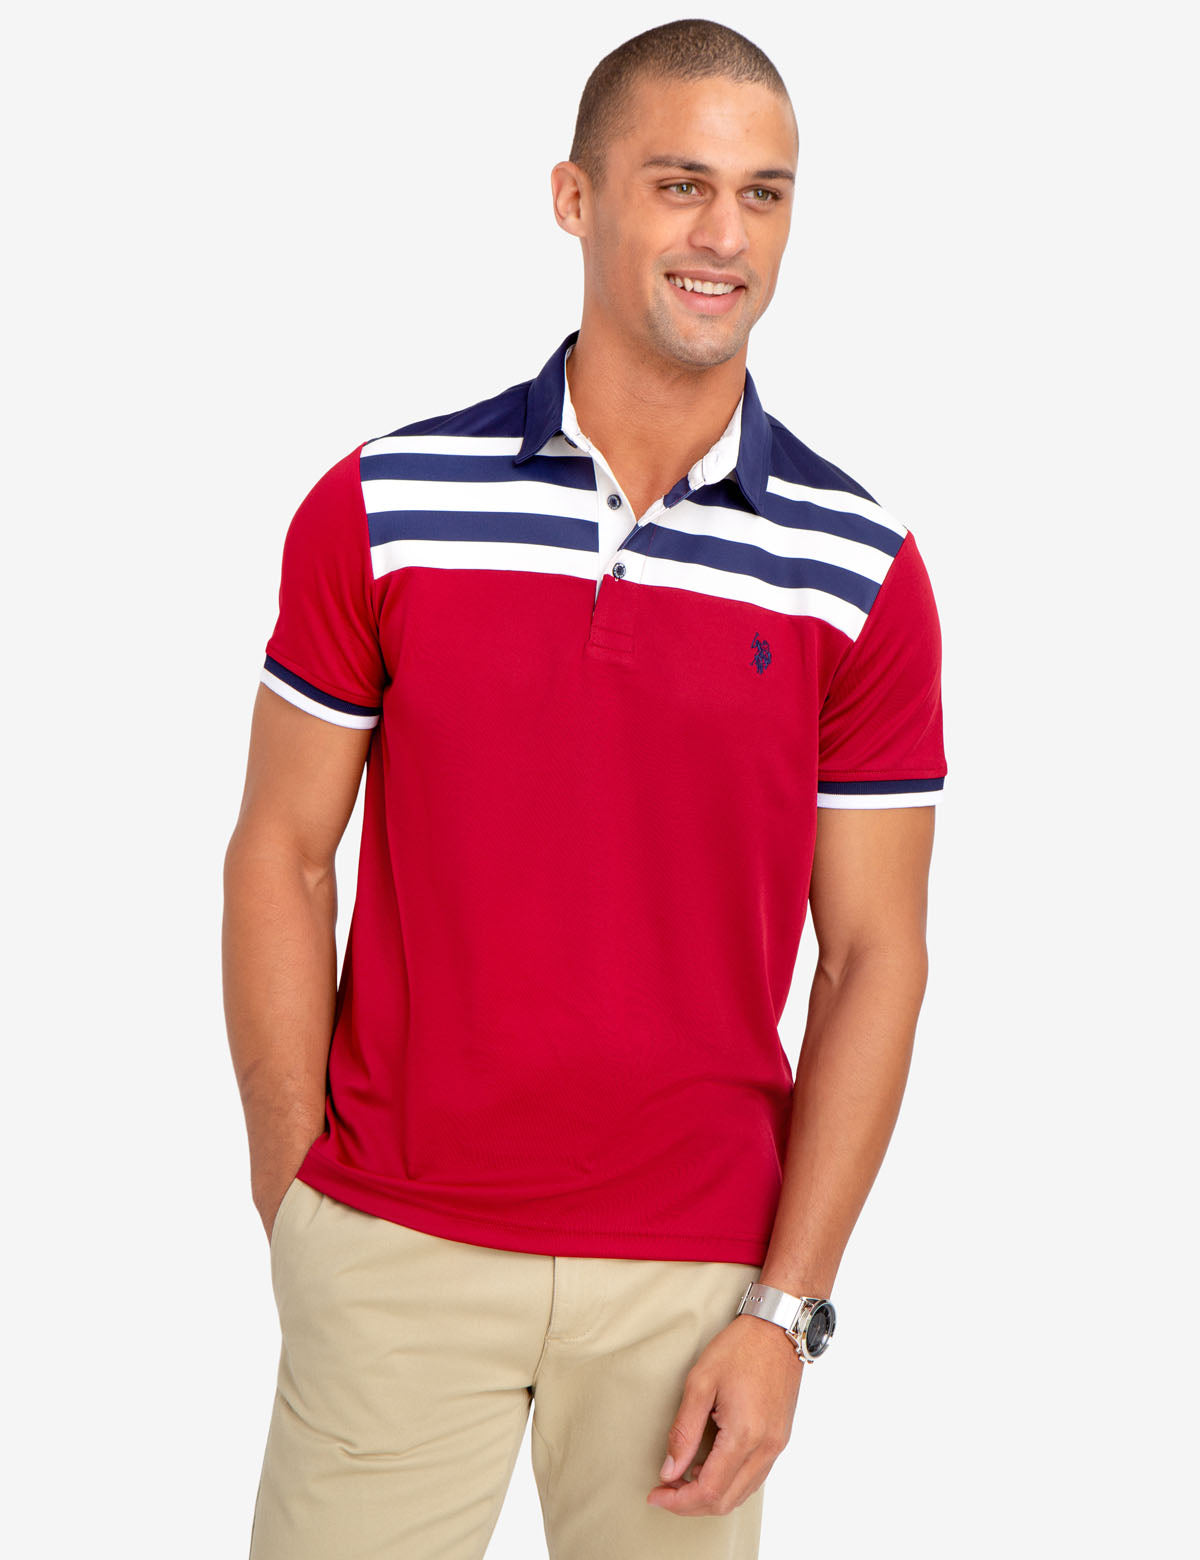 SLIM FIT PERFORMANCE POLO SHIRT